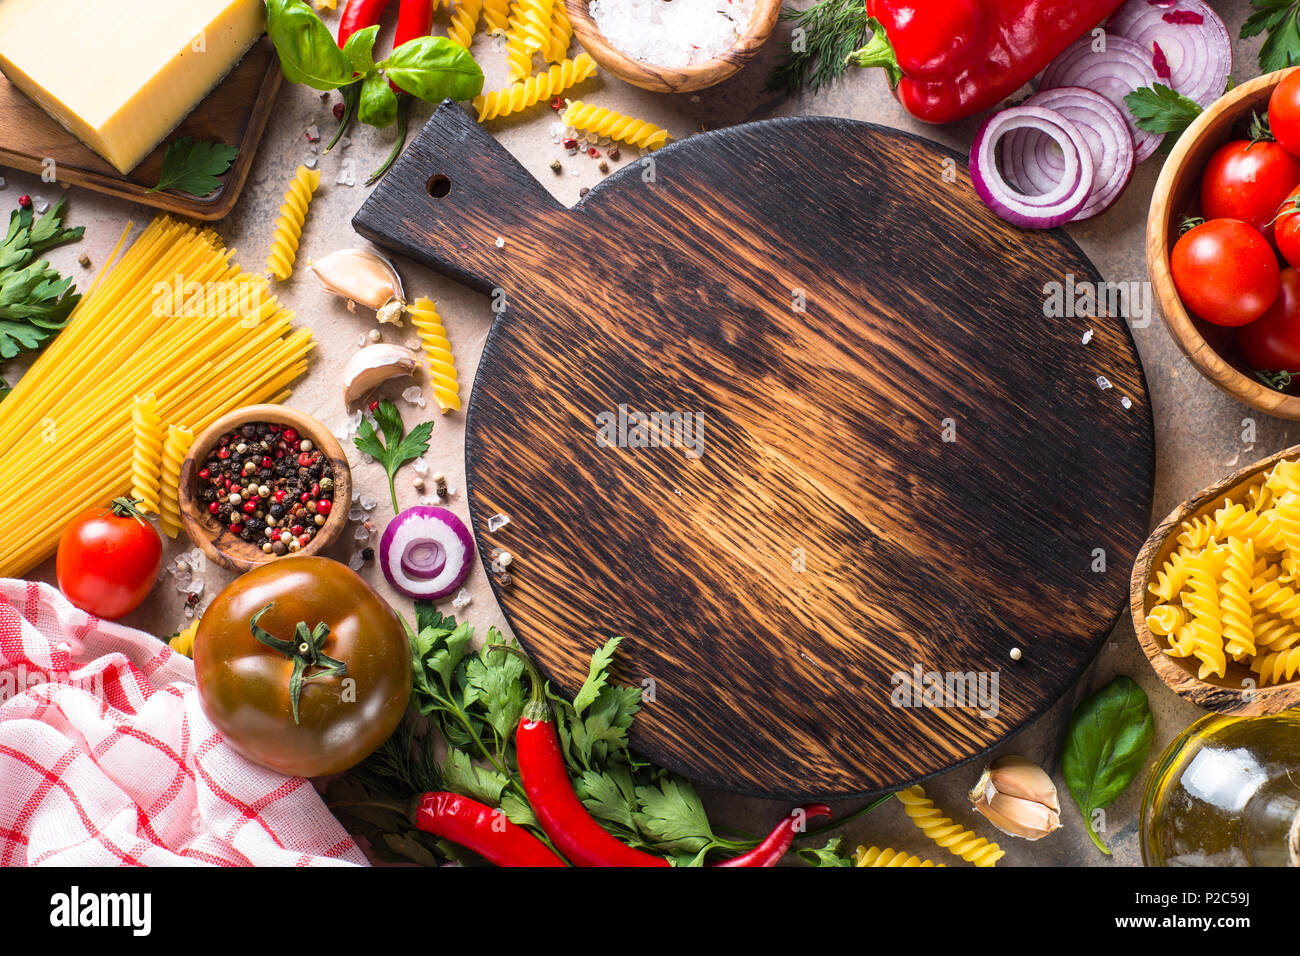 Minced meat, pasta and vegetables.  Stock Photo